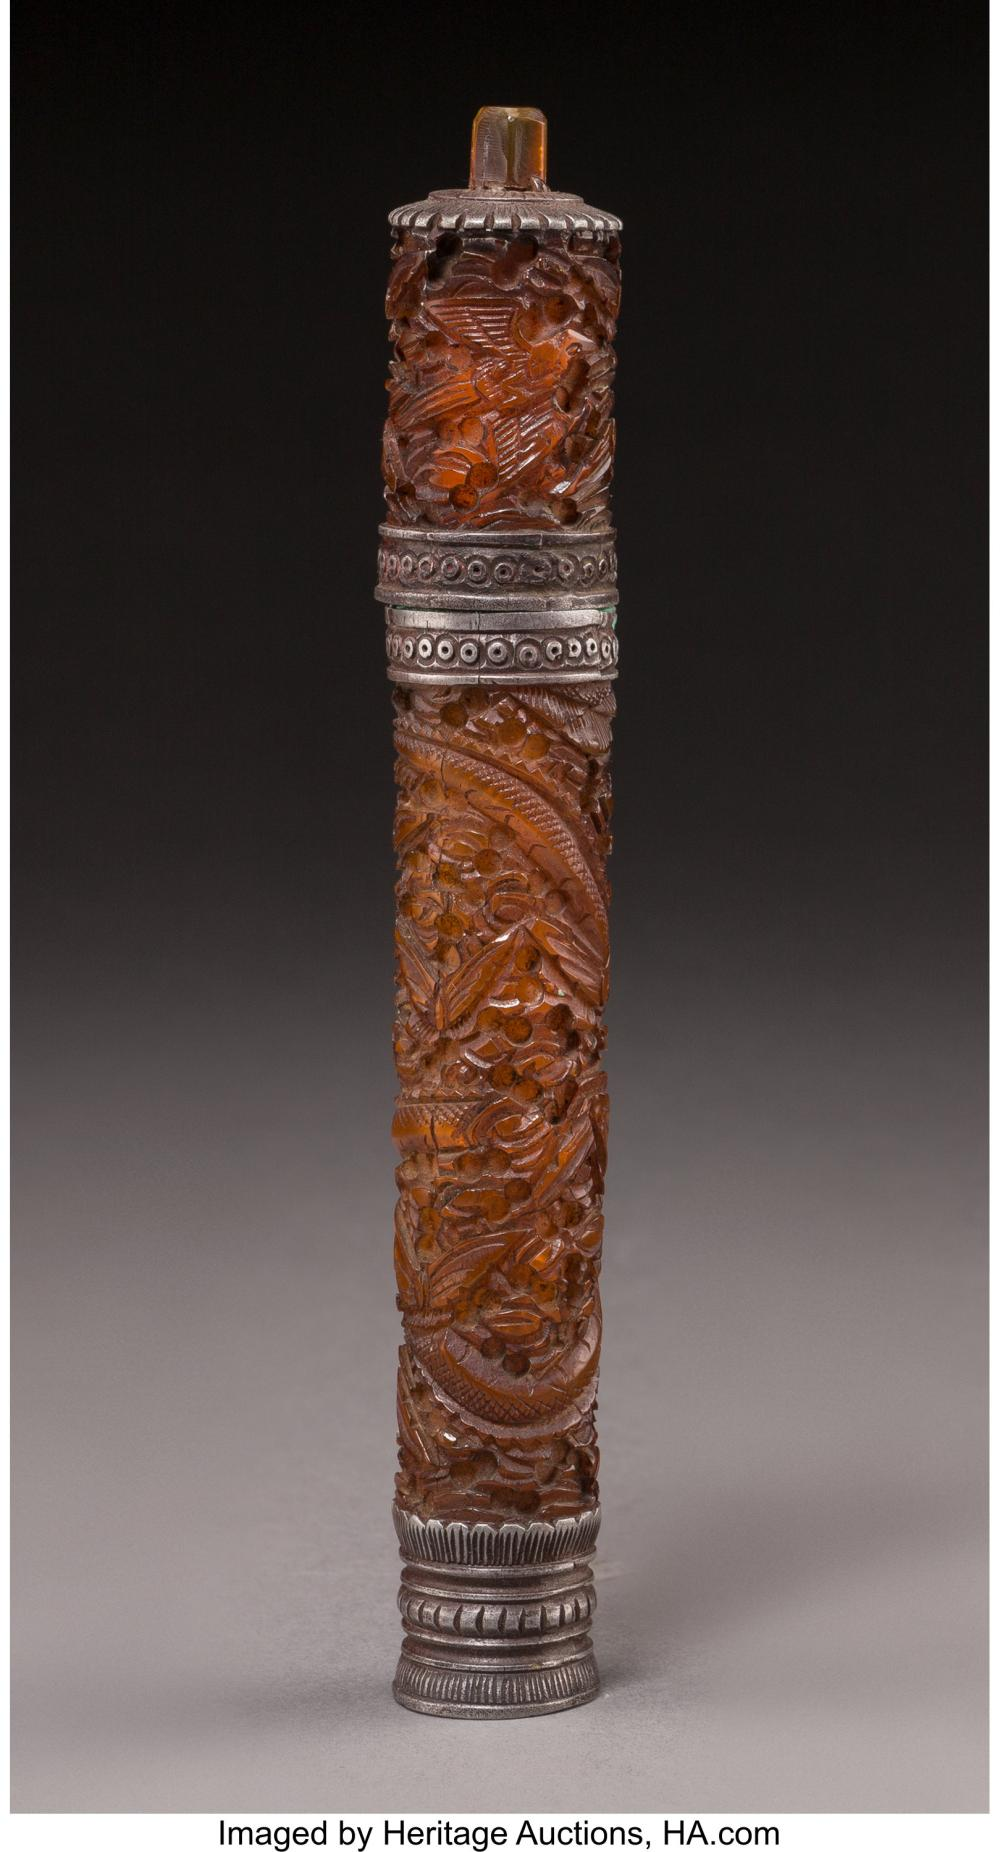 Lot 21276: A Sino-Tibetan Carved Amber and Pewter Incense Holder 6-1/4 inches (15.9 cm)